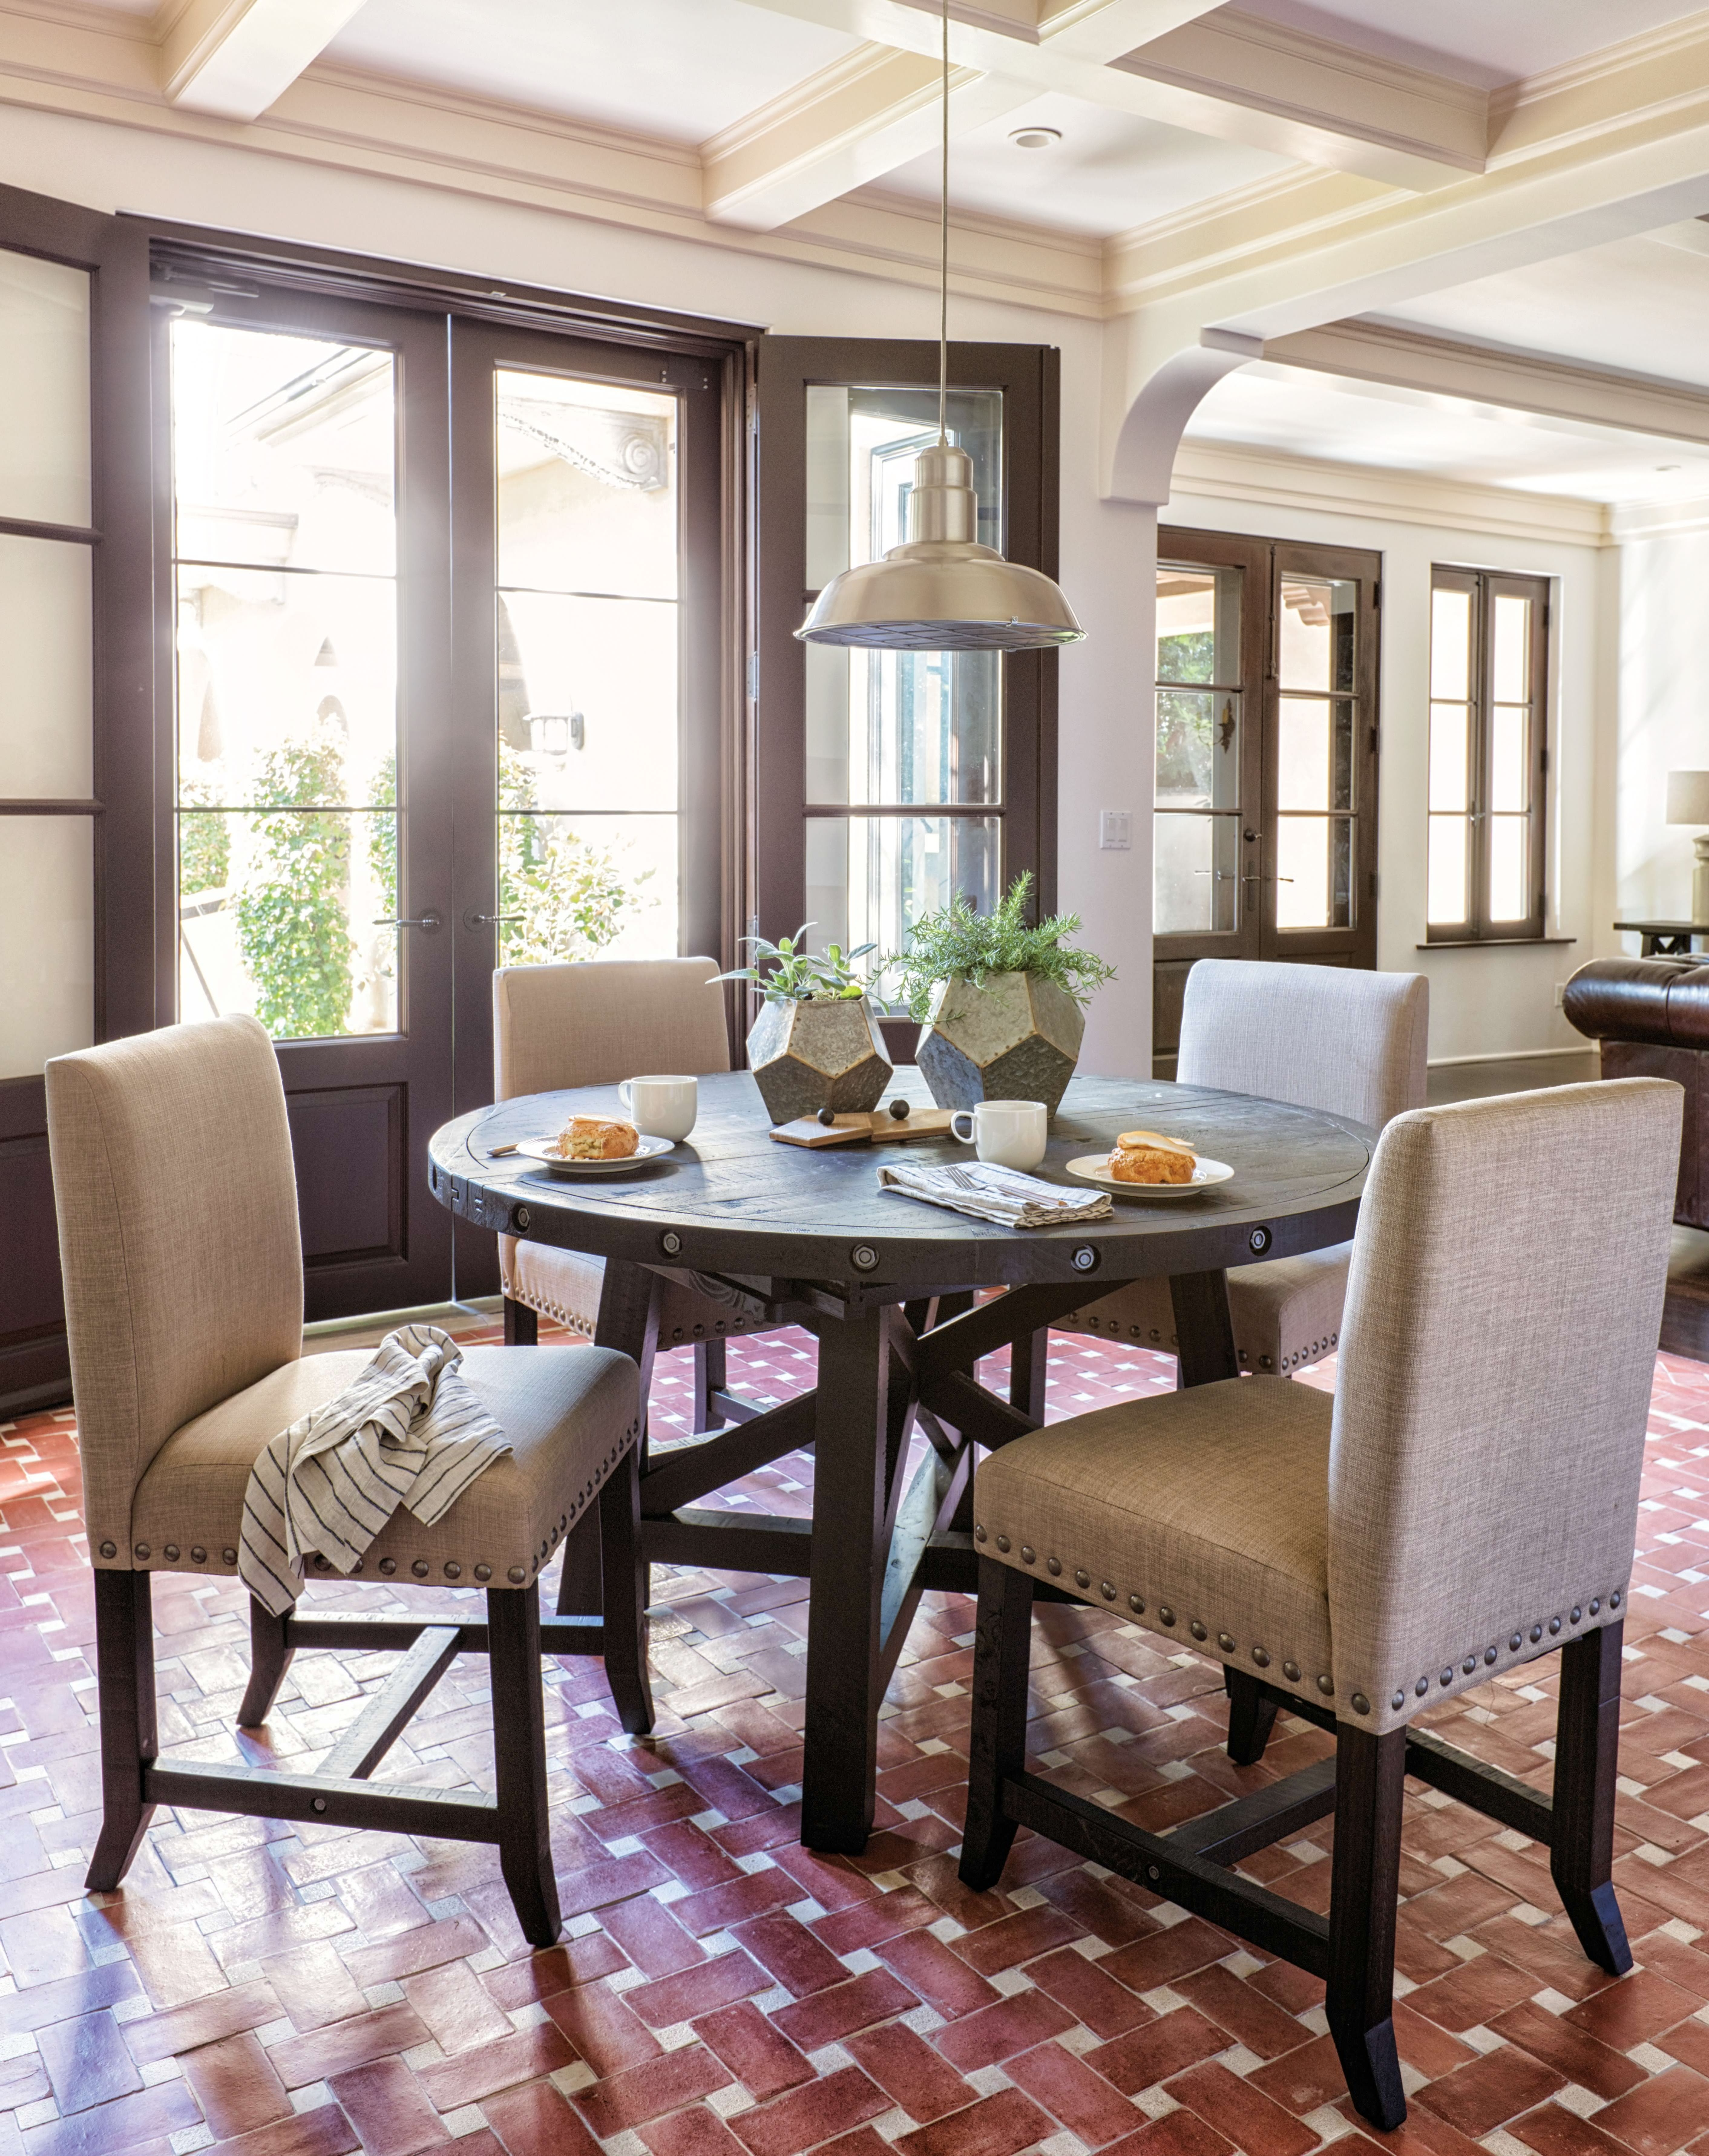 Jaxon 5 Piece Extension Round Dining Sets With Wood Chairs Within Well Known Jaxon 5 Piece Round Dining Set (View 5 of 25)